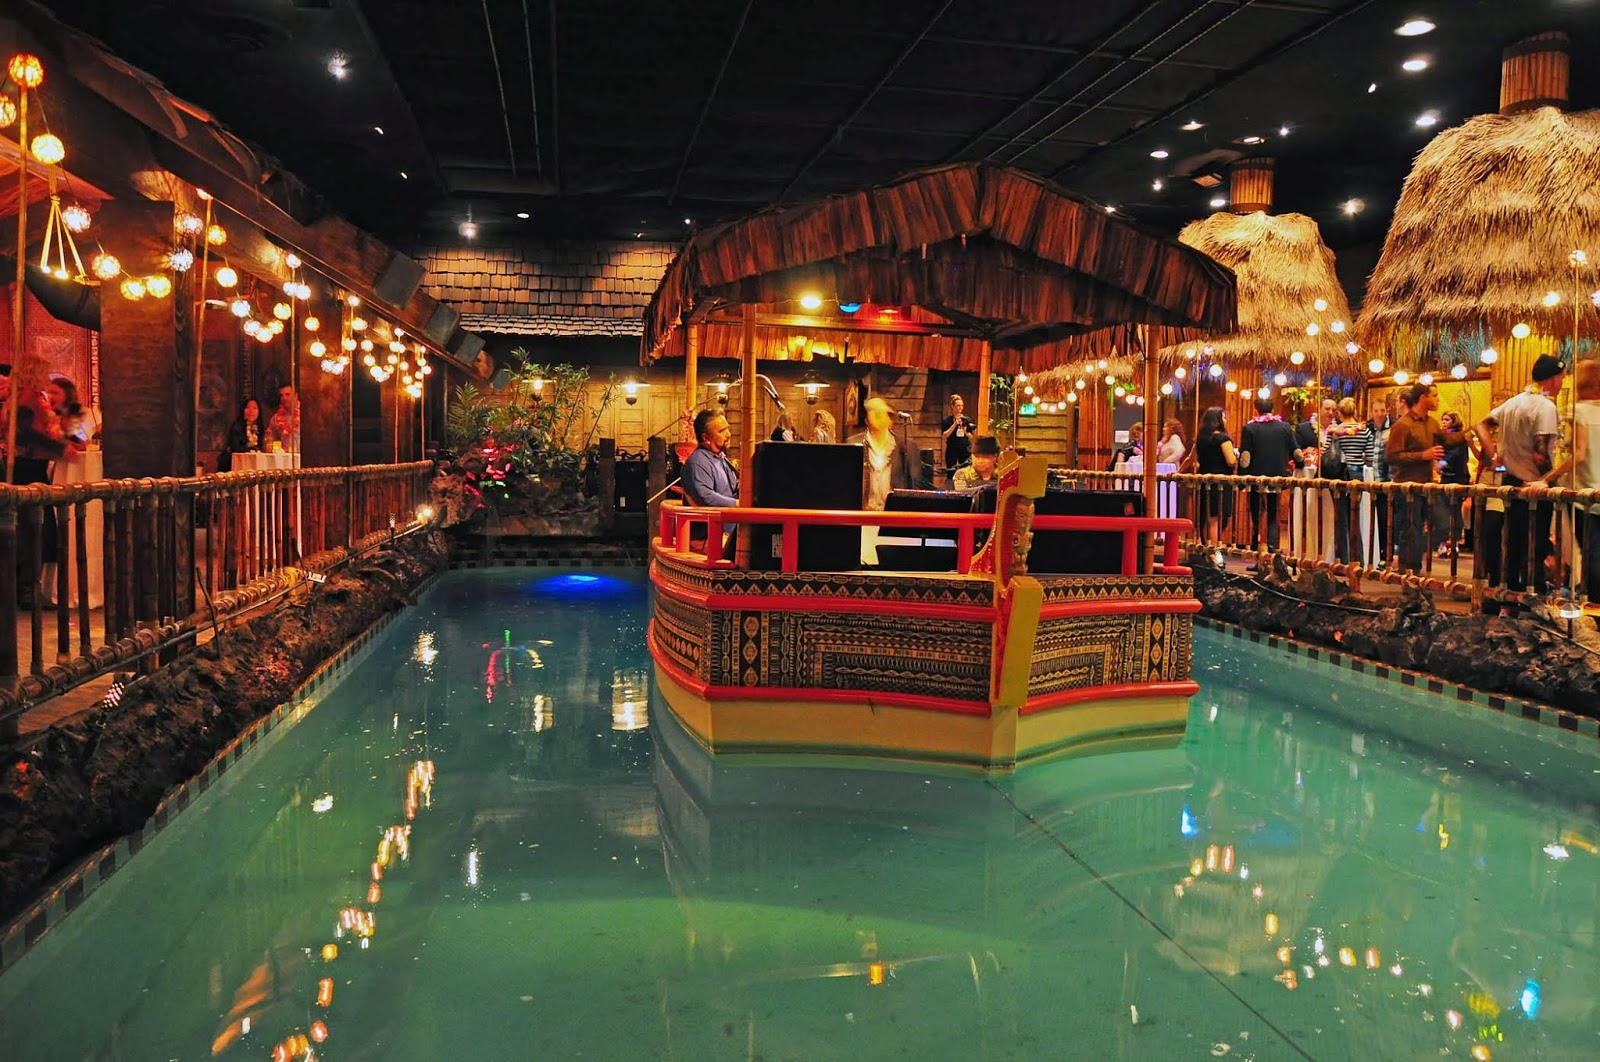 Historic Tonga Room at The Fairmont San Francisco Celebrates Tonga ...